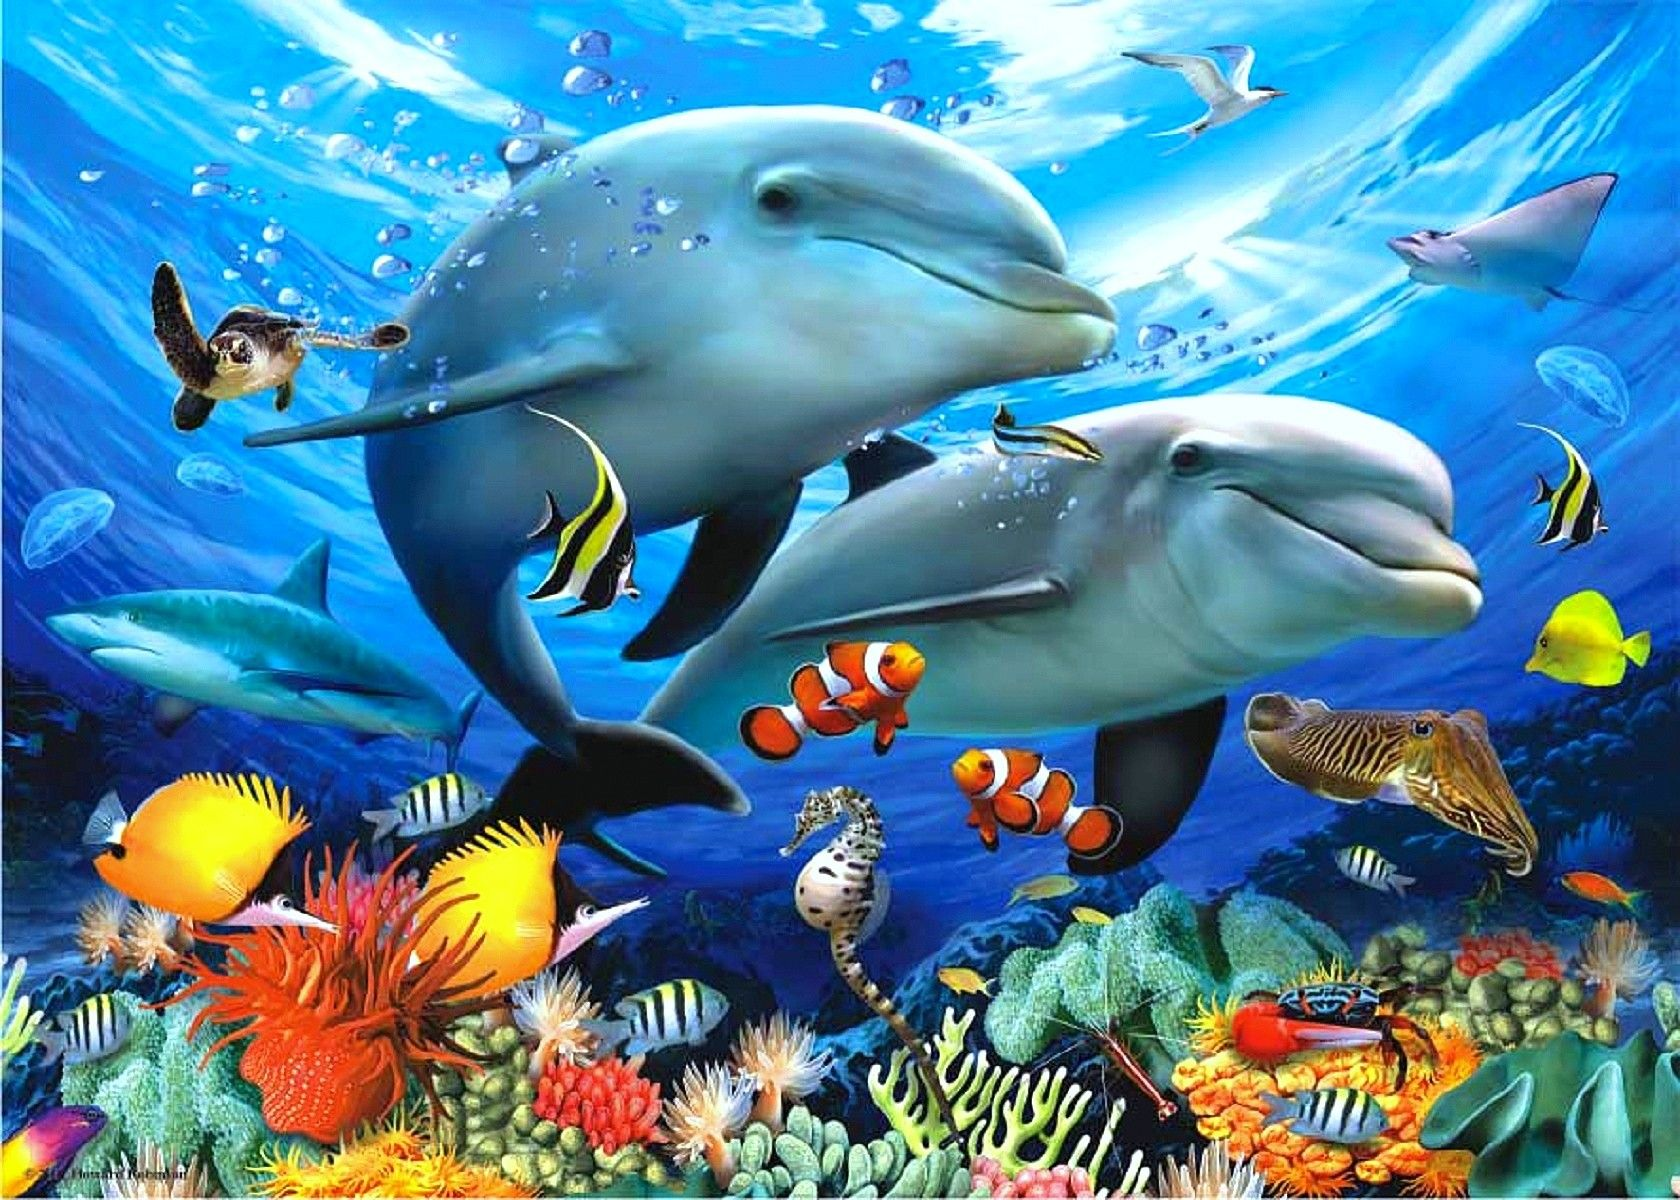 Dolphins wallpapers high definition wallpapers cool nature - Oceans Sea Starfish Ocean Nature Urchins Orange Hd Wallpapers